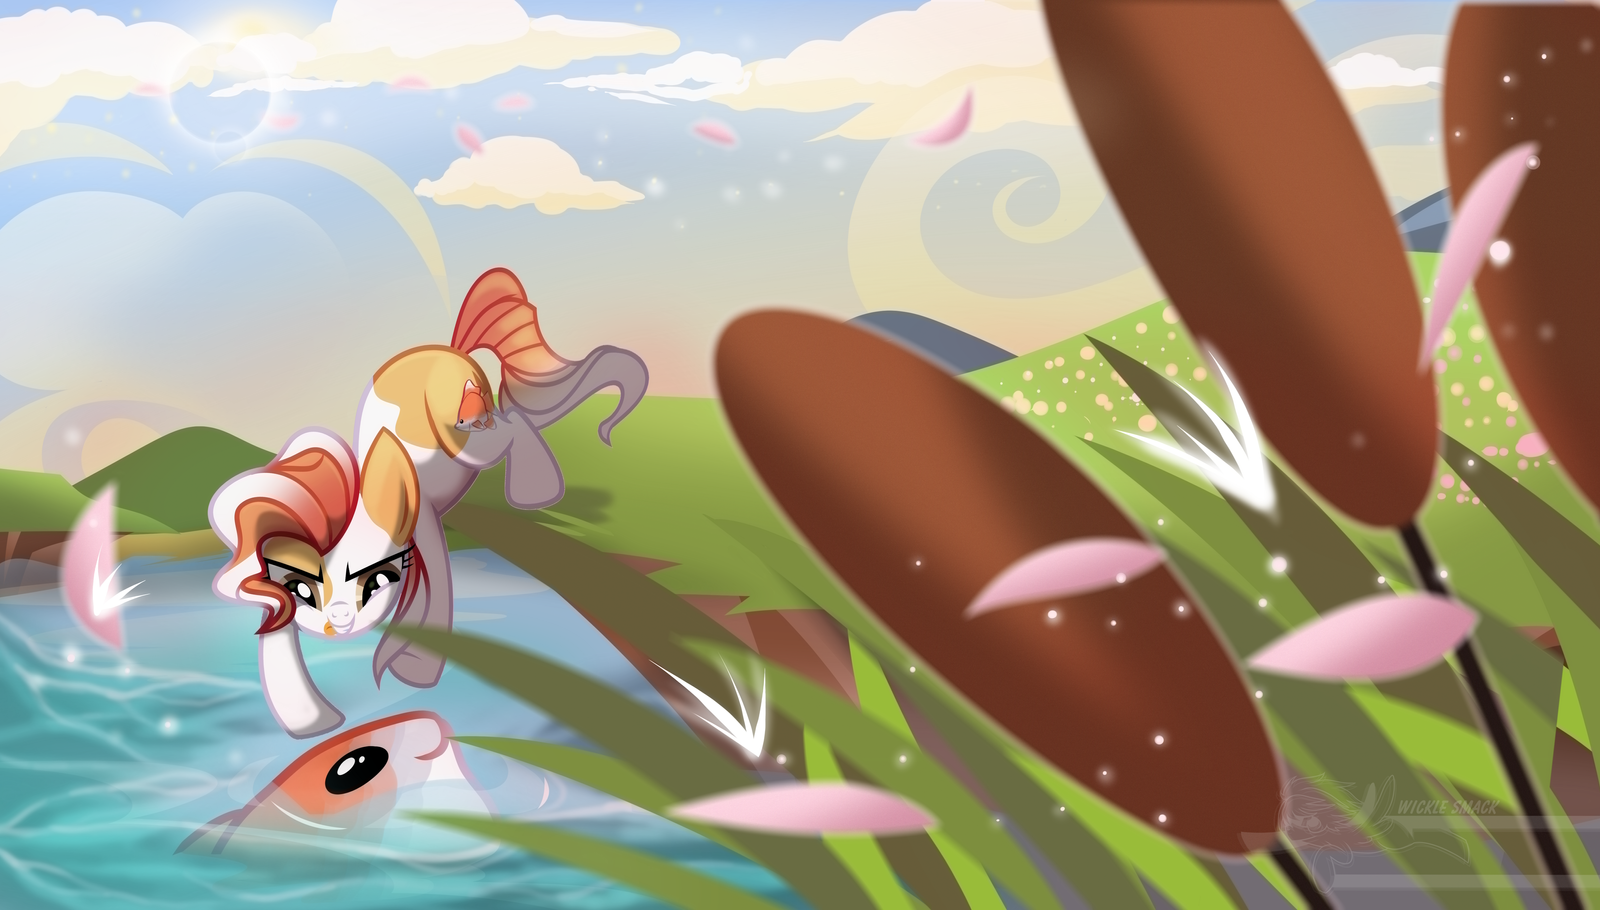 Pebbles' Day Out by Wicklesmack